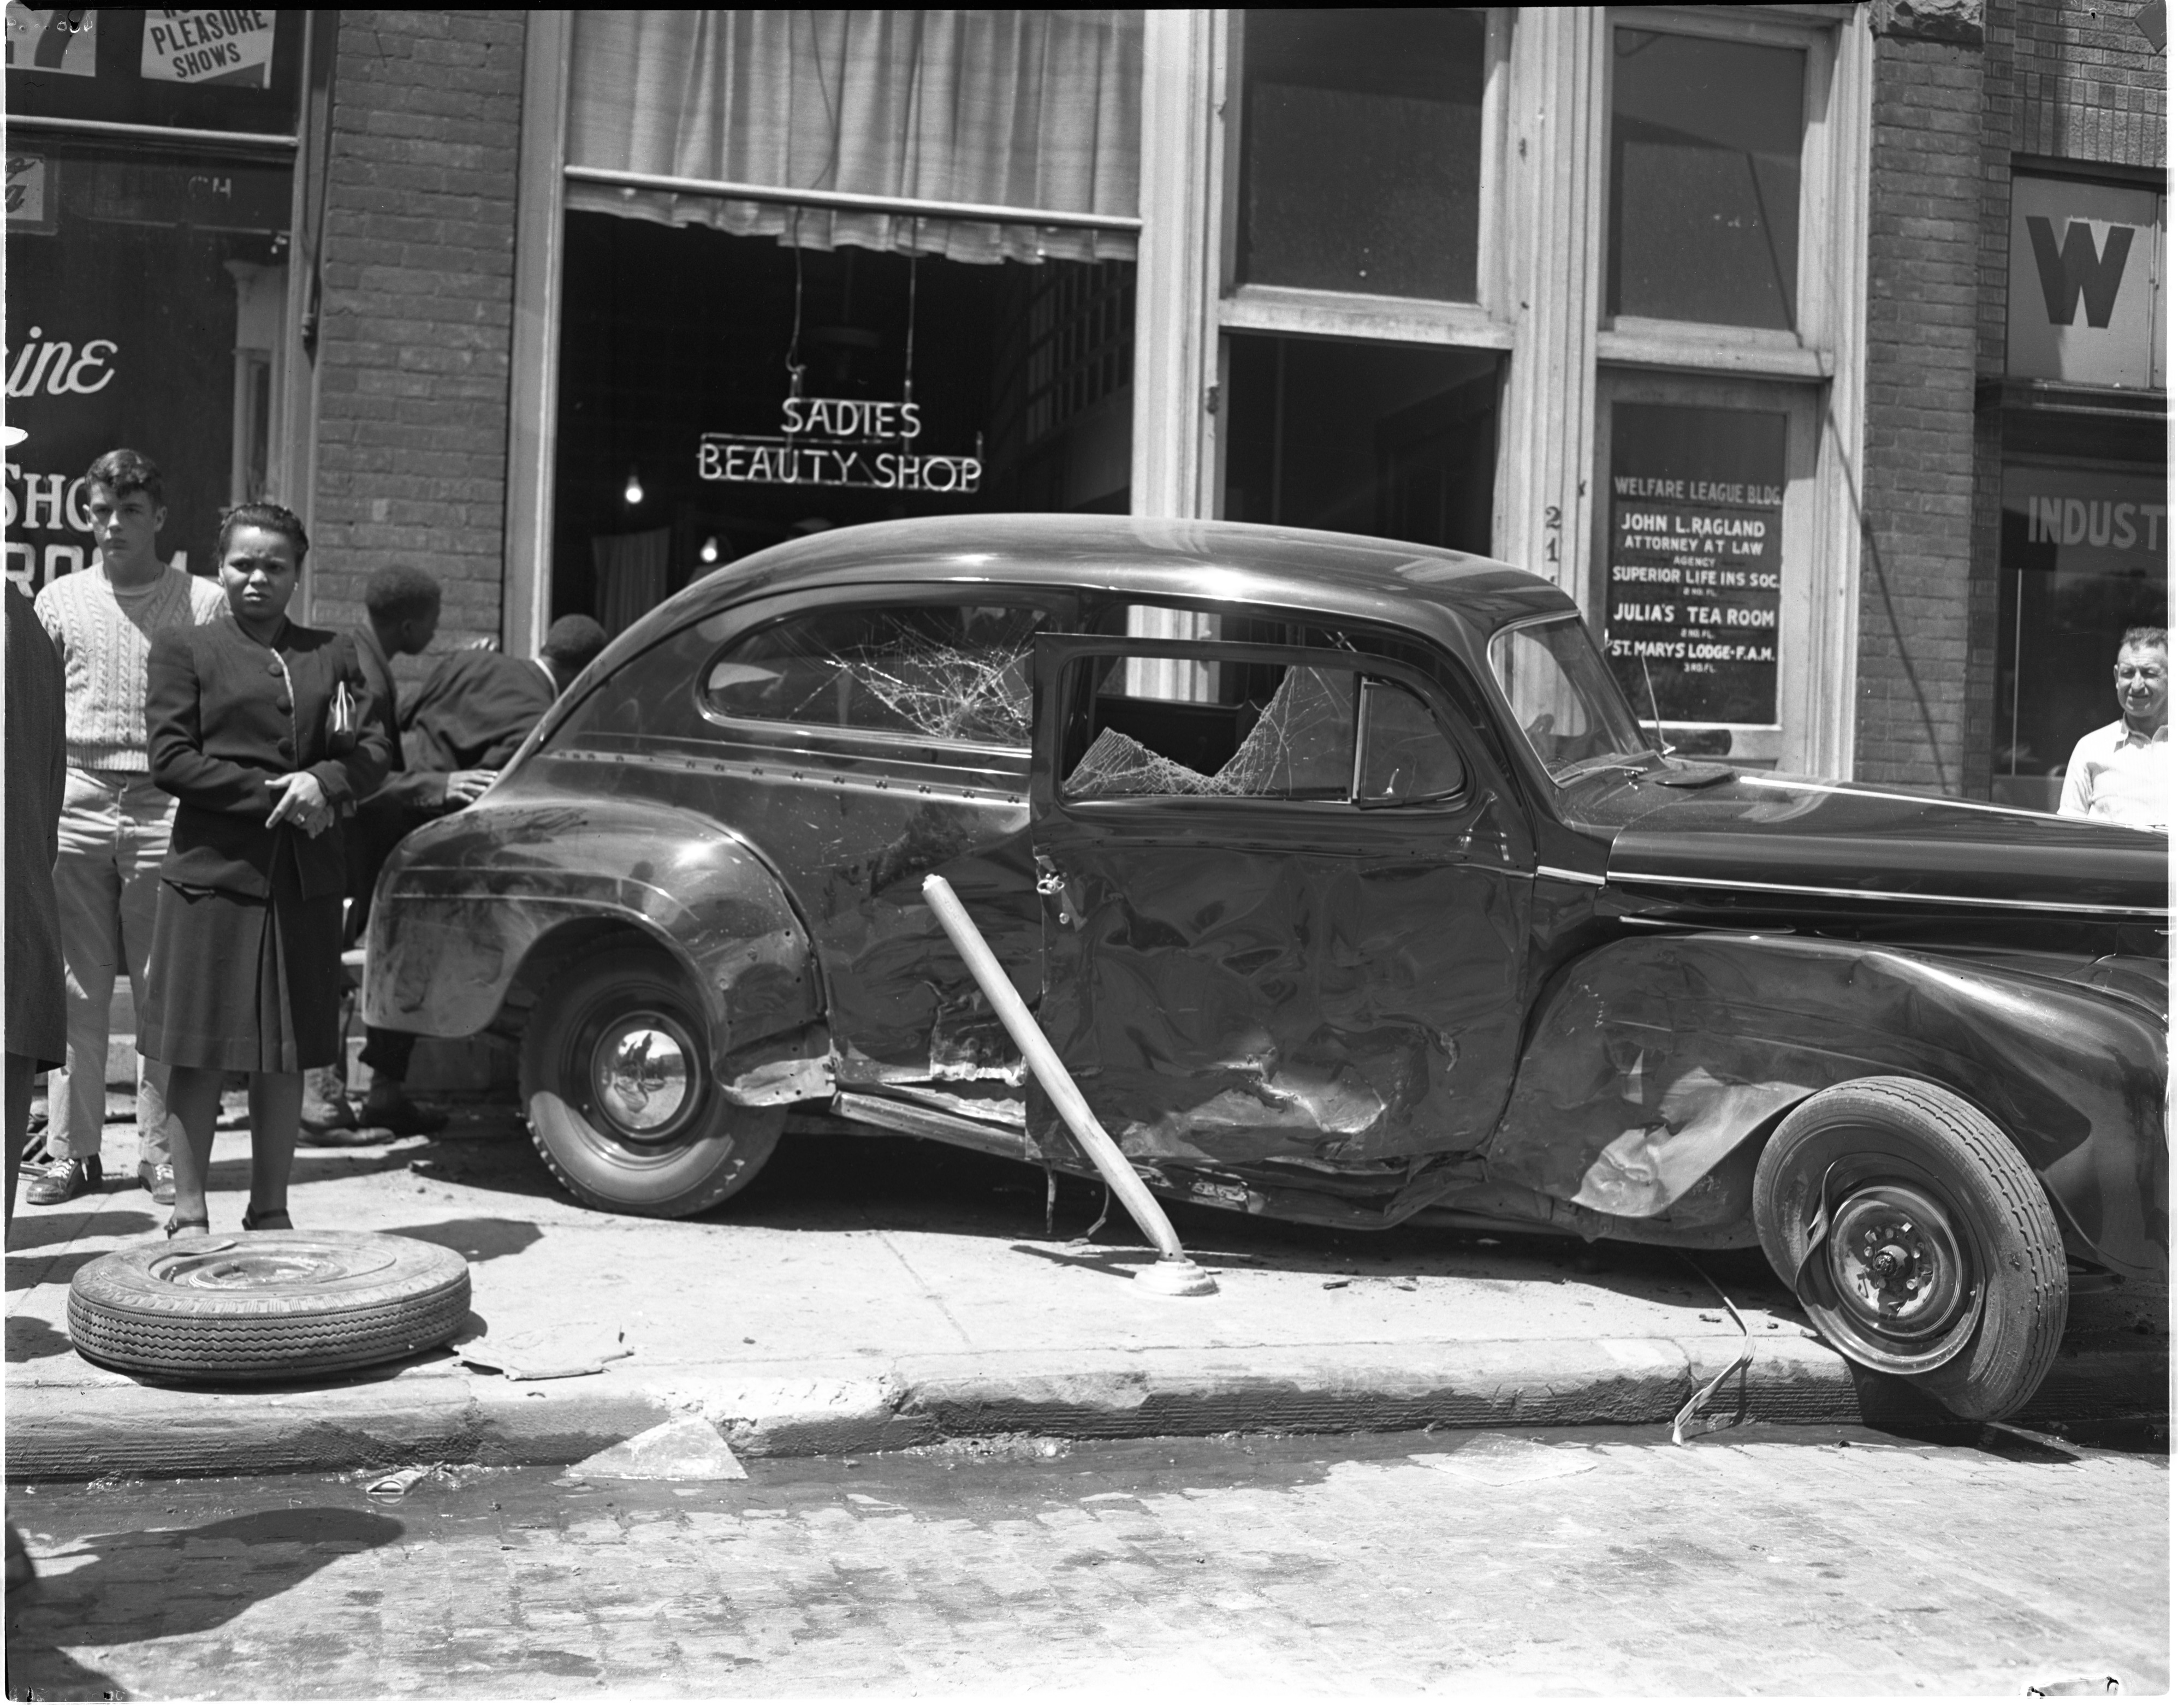 Accident Scene Of Parked Car Hit On N. Fourth Avenue, June 1947 image